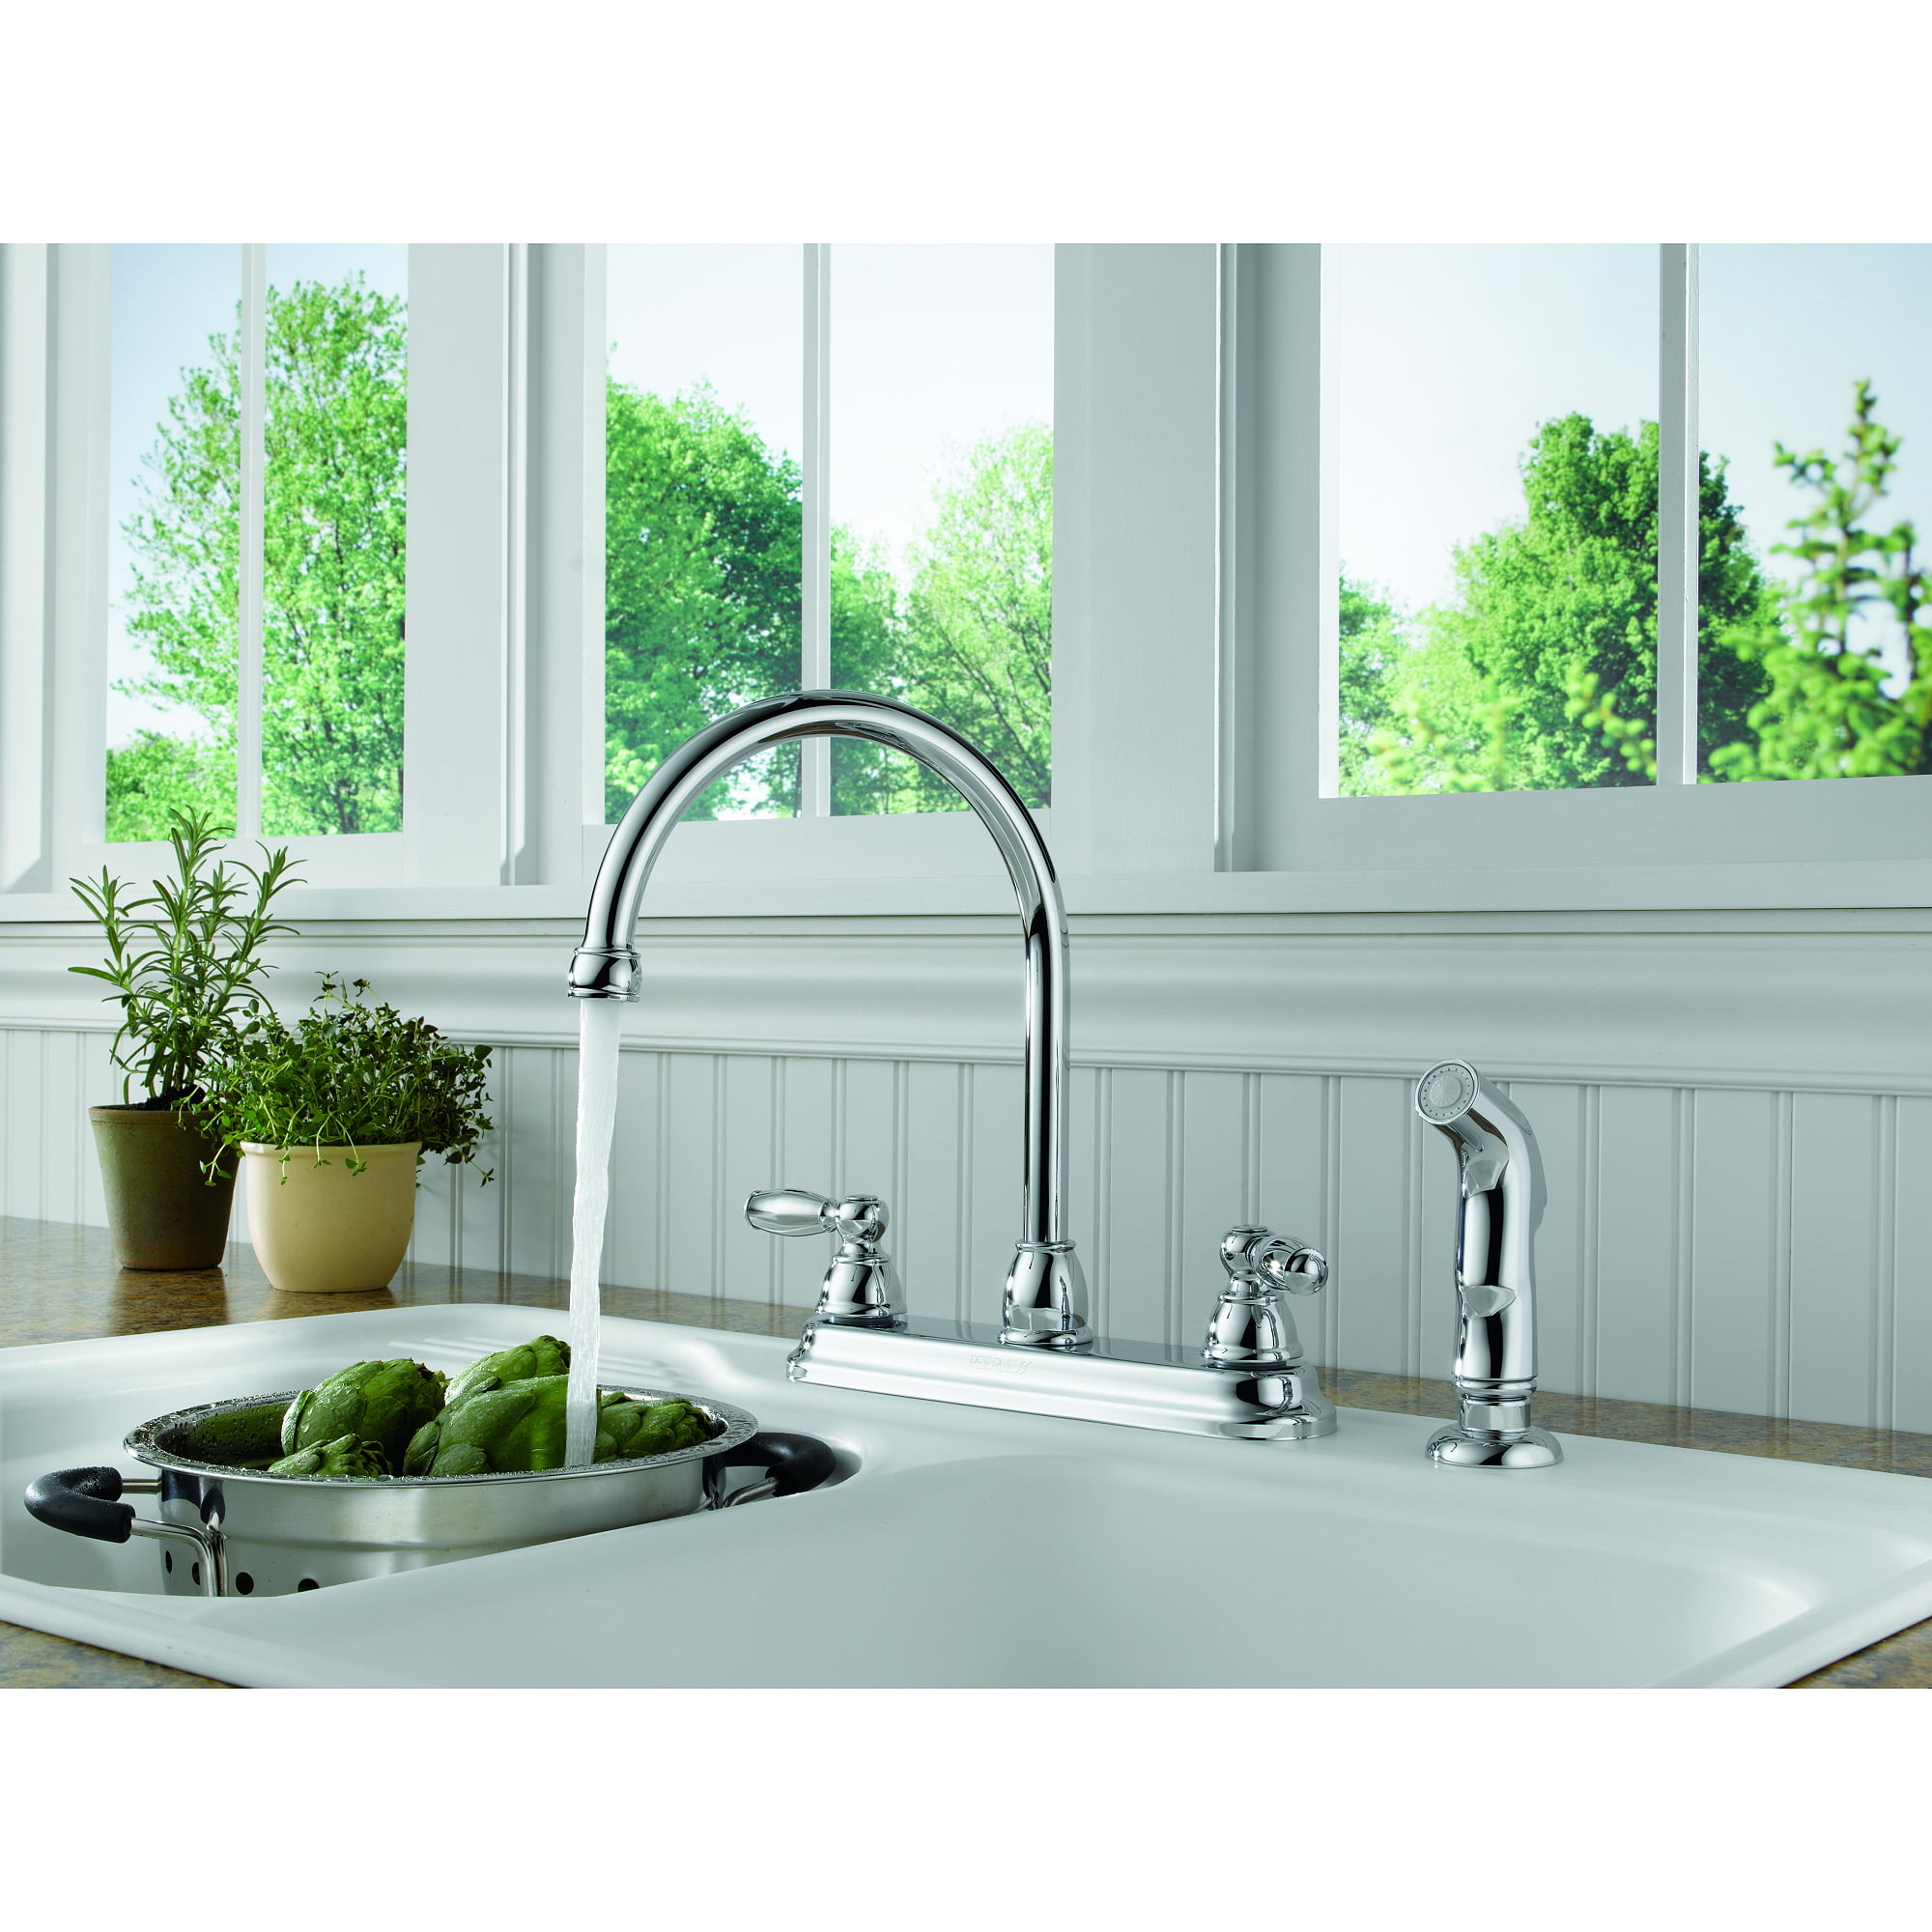 Kitchen Faucet peerless two-handle kitchen faucet with side-sprayer, chrome